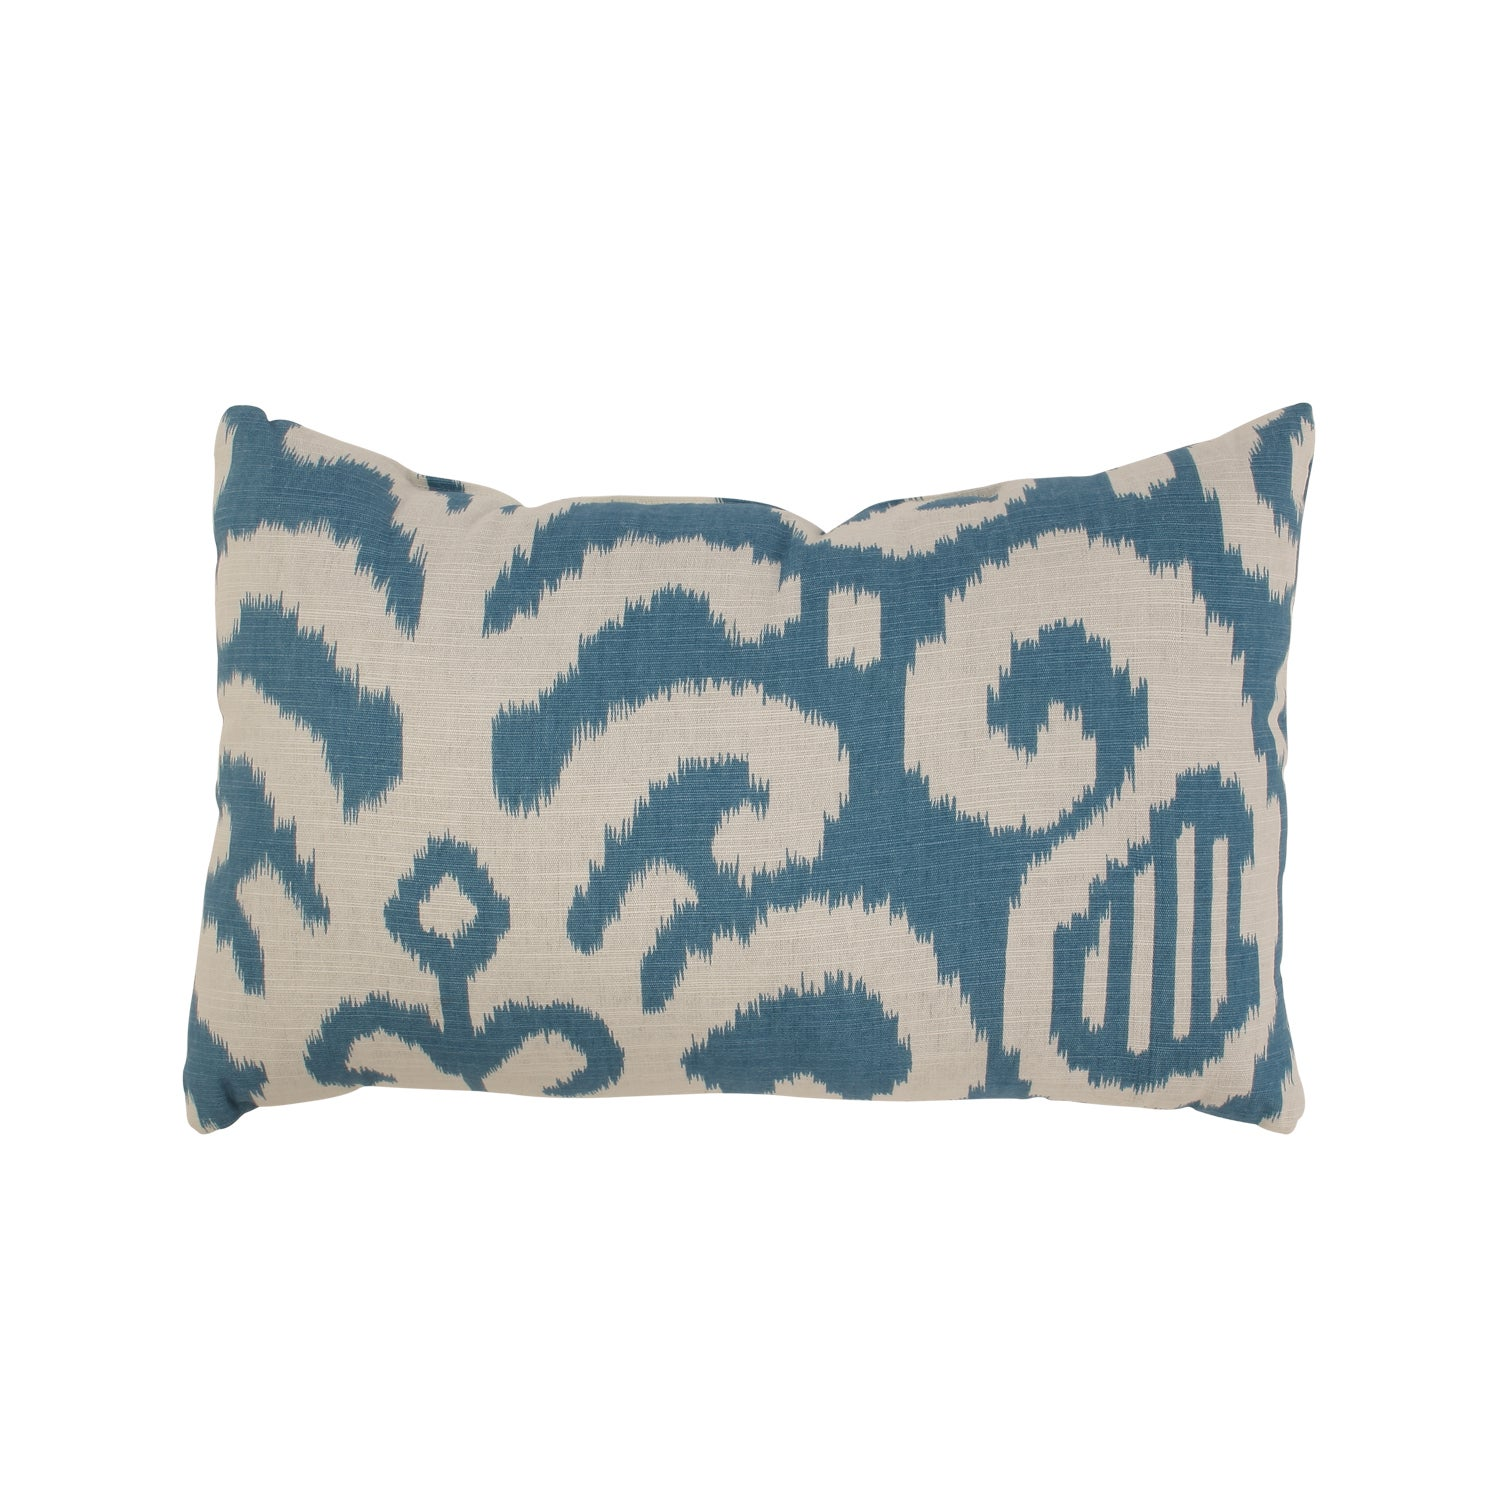 Fergano Rectangular Throw Pillow in Aqua